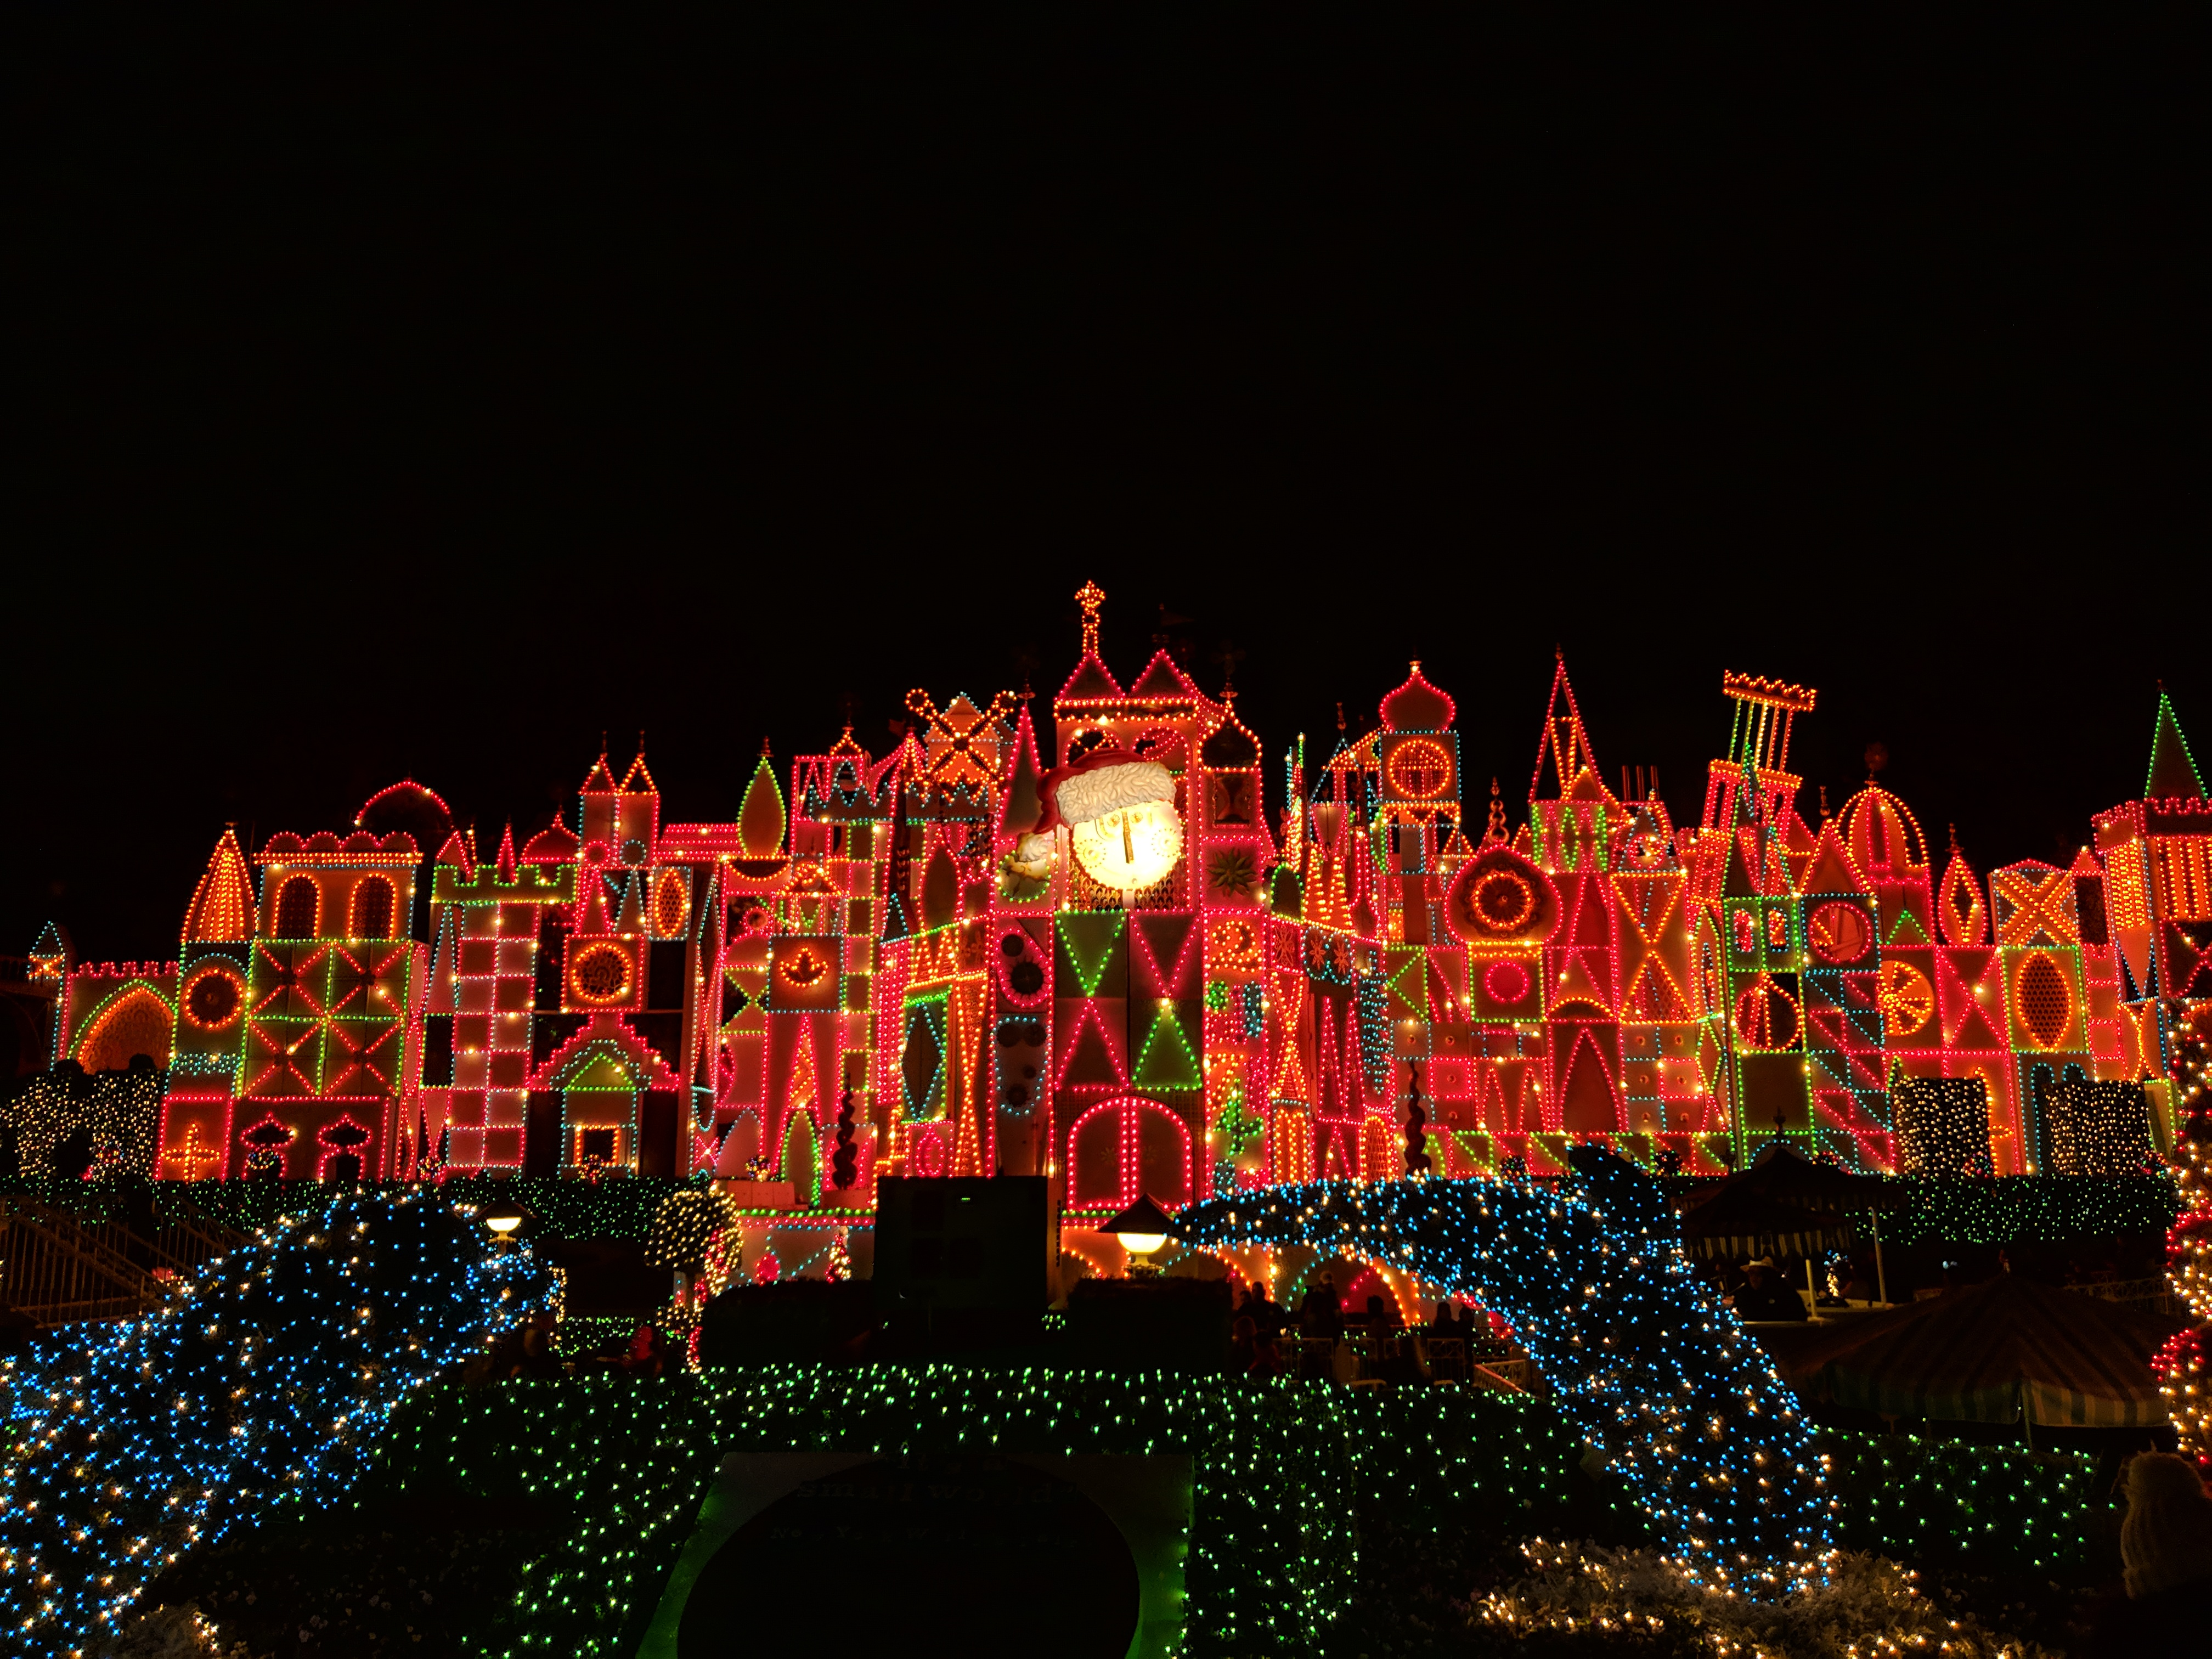 It's a Small World Christmas Overlay